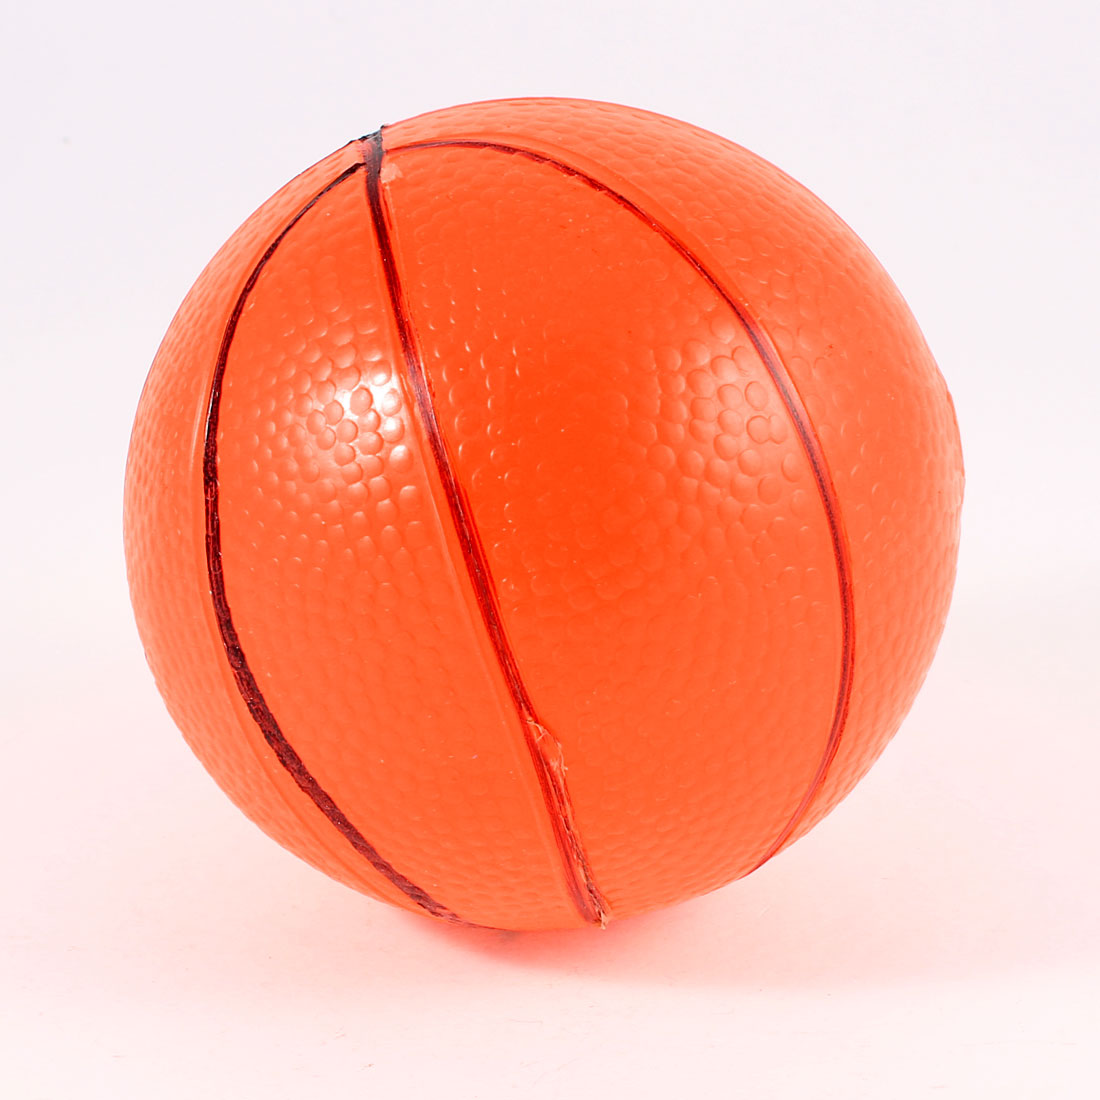 9cm Diameter Orange Inflatable PVC Mini Basketball Toy Gift for Children